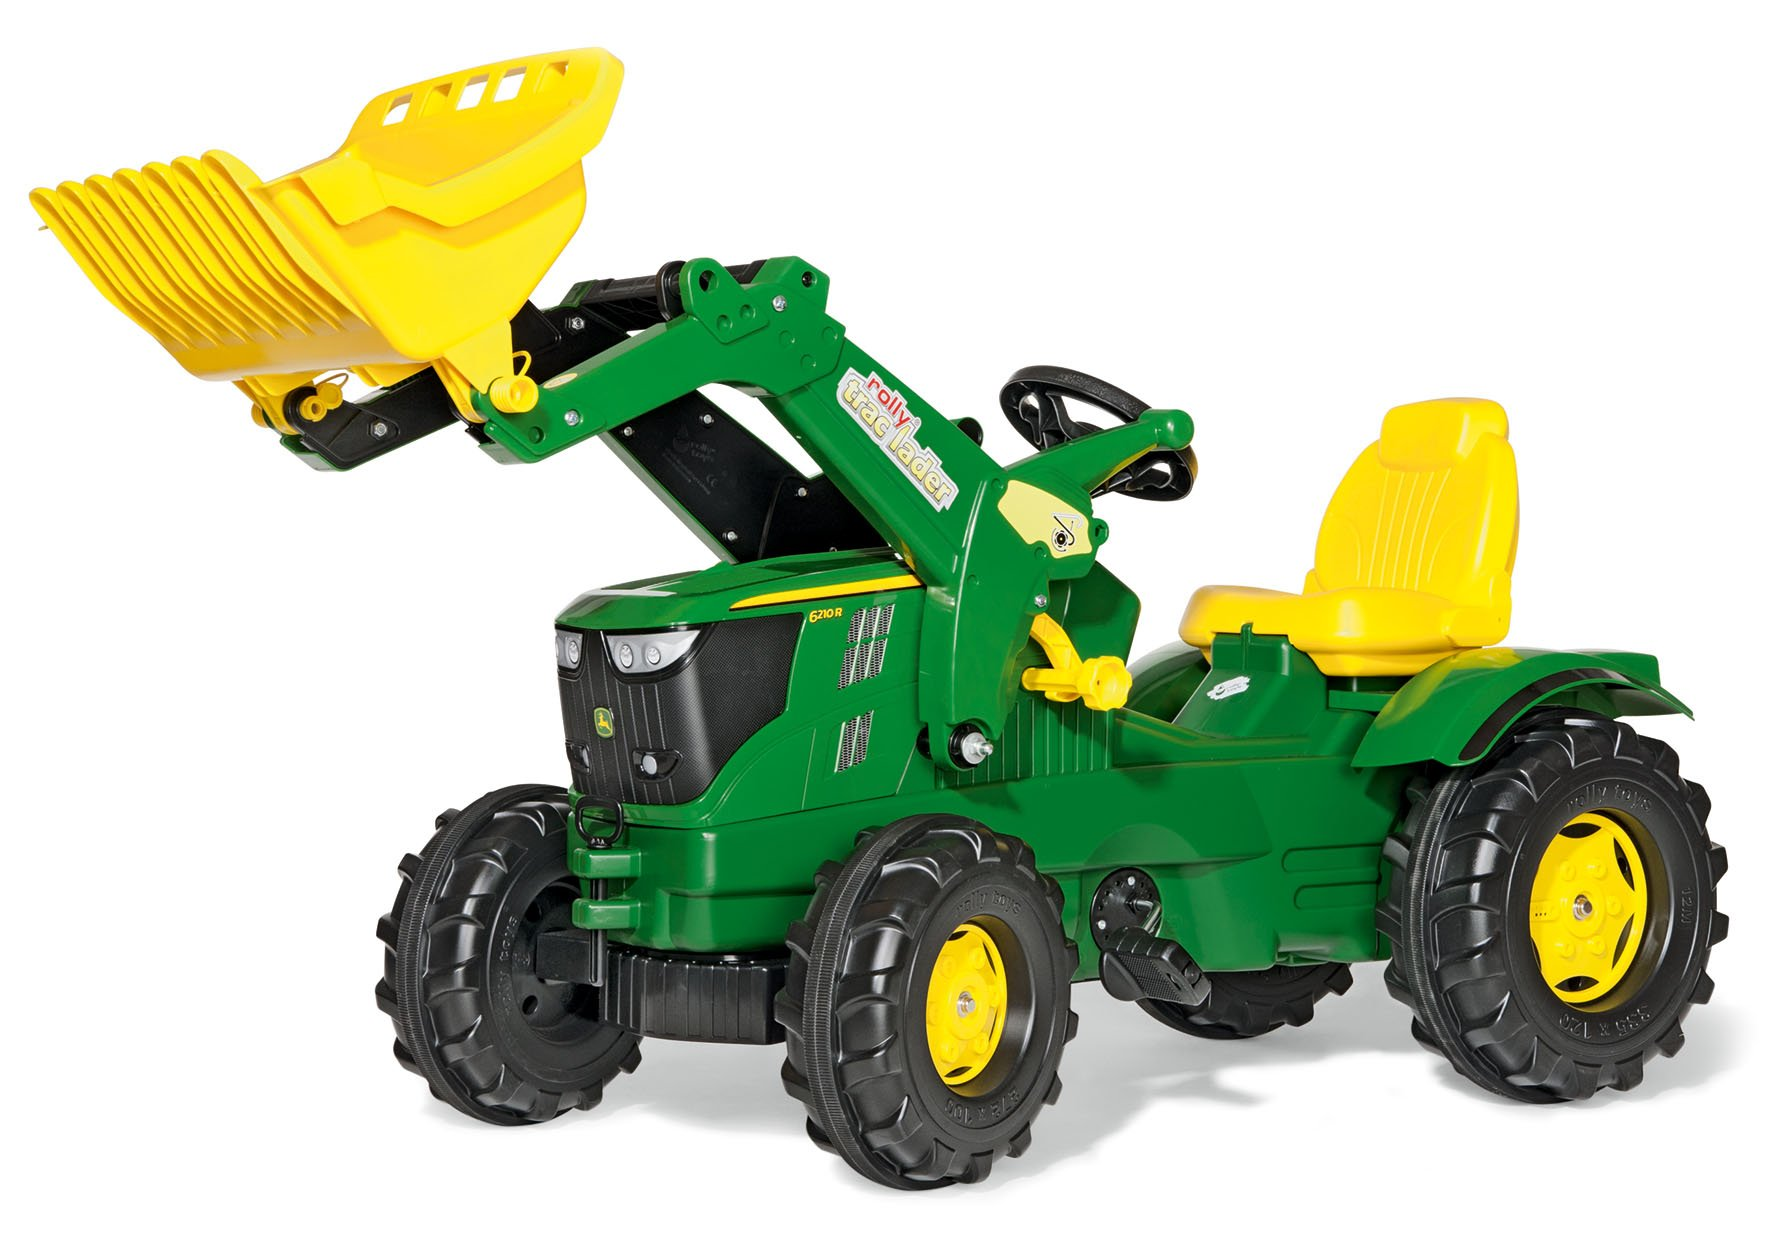 rolly toys John Deere Farmtrac Pedal Tractor with Working Front Loader and Additional Hitches, Youth Ages 3+